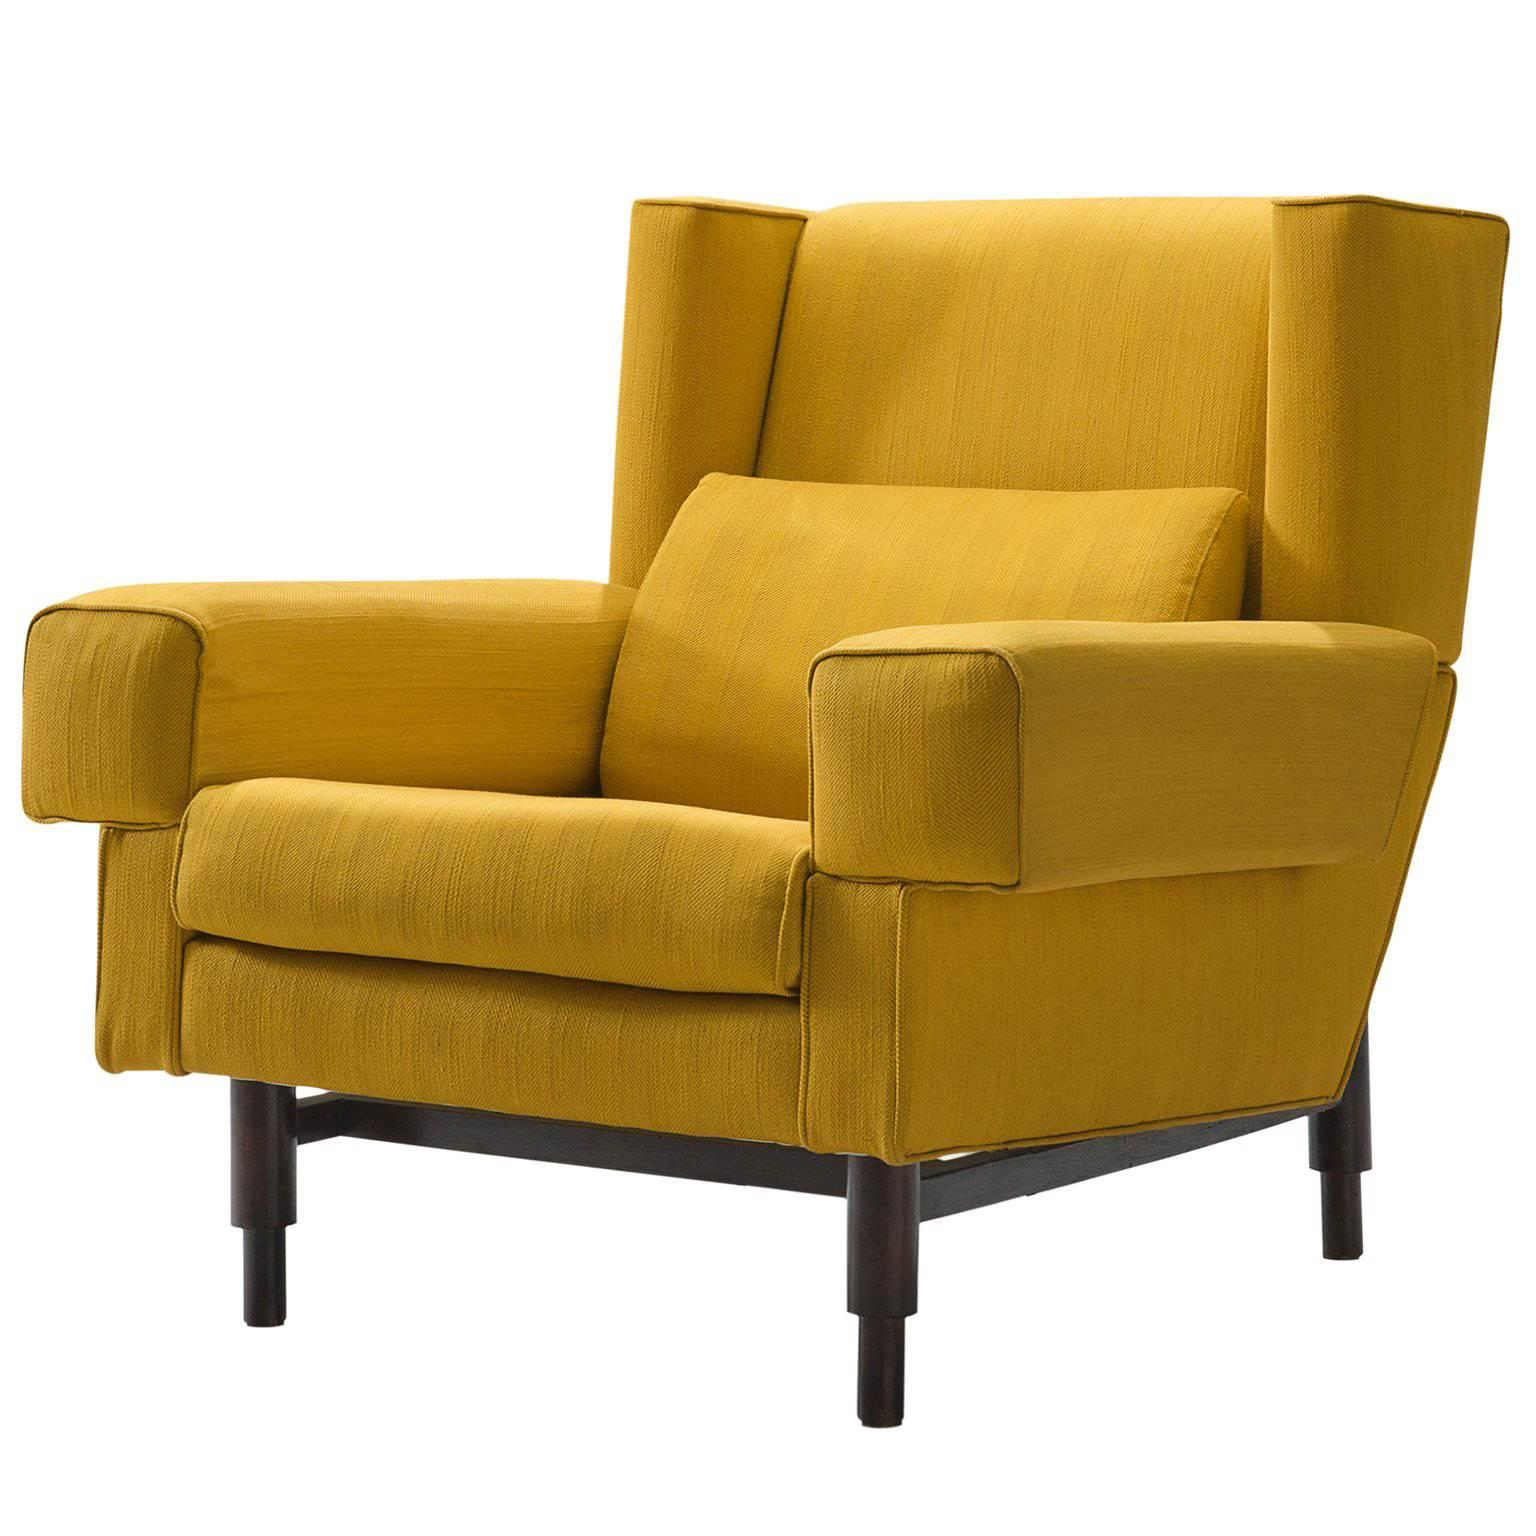 Saporiti Yellow Lounge Chair circa 1950 at 1stdibs